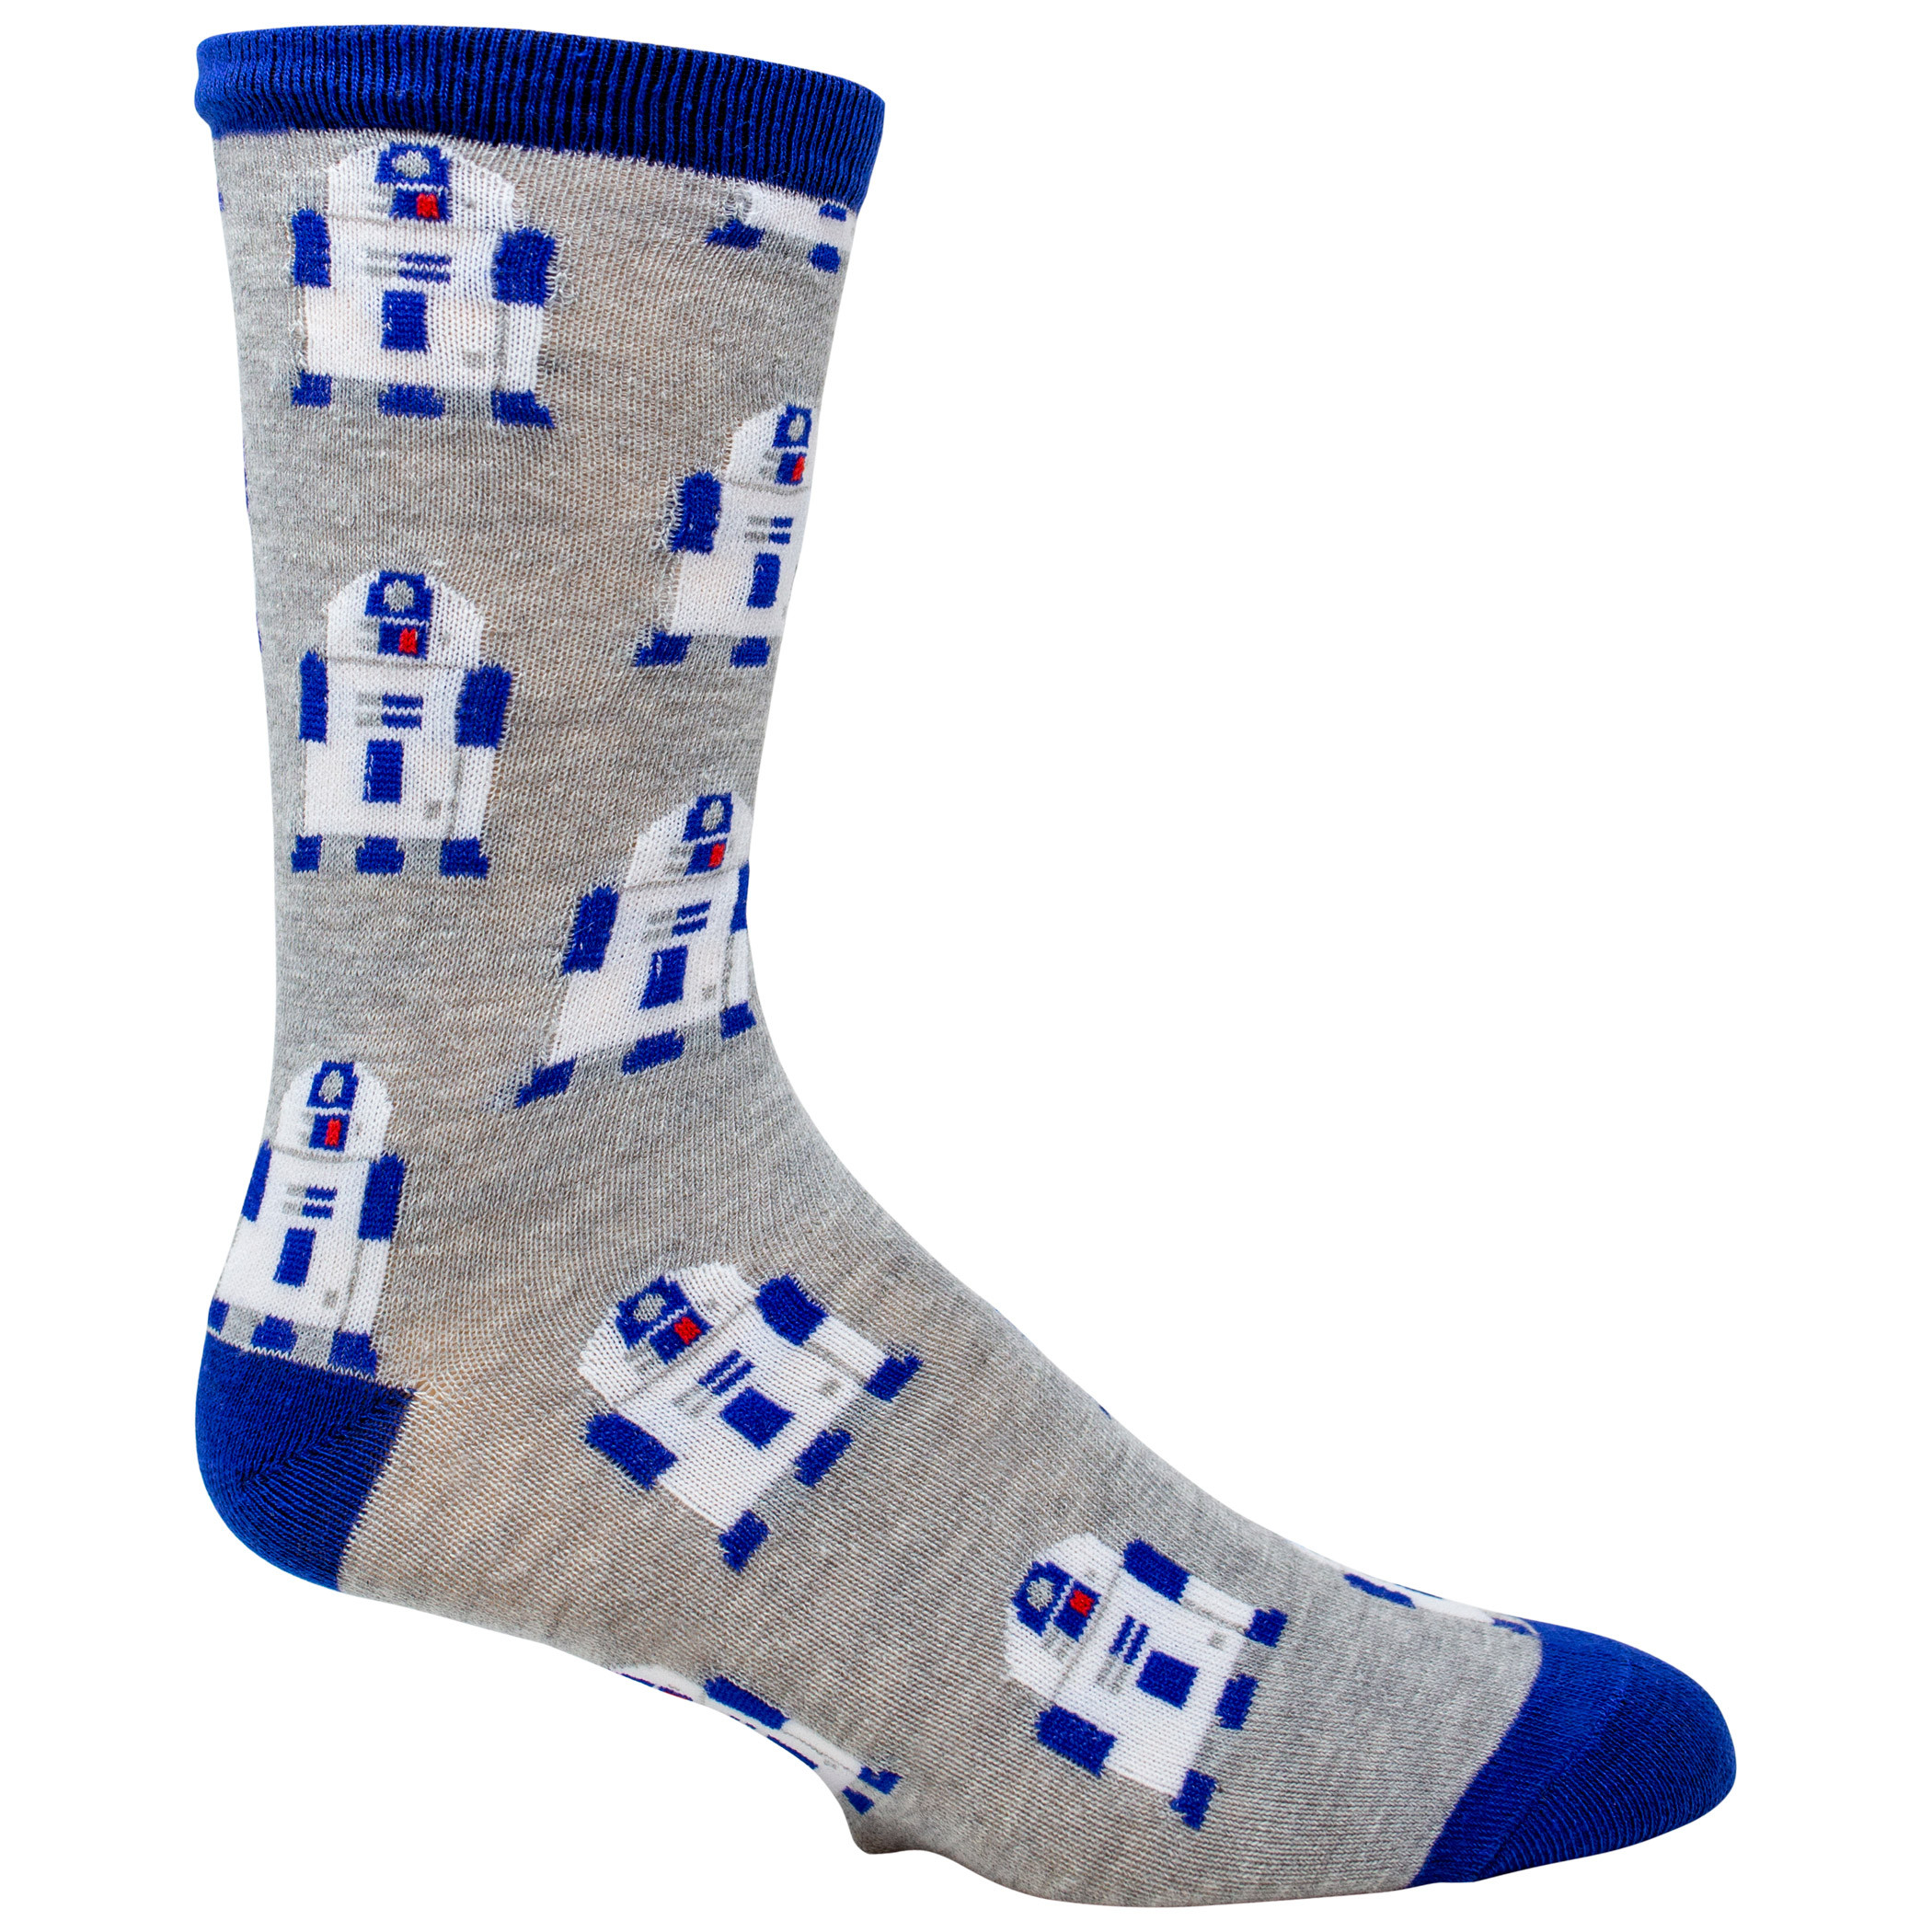 Star Wars R2-D2 All Over Print Crew Socks